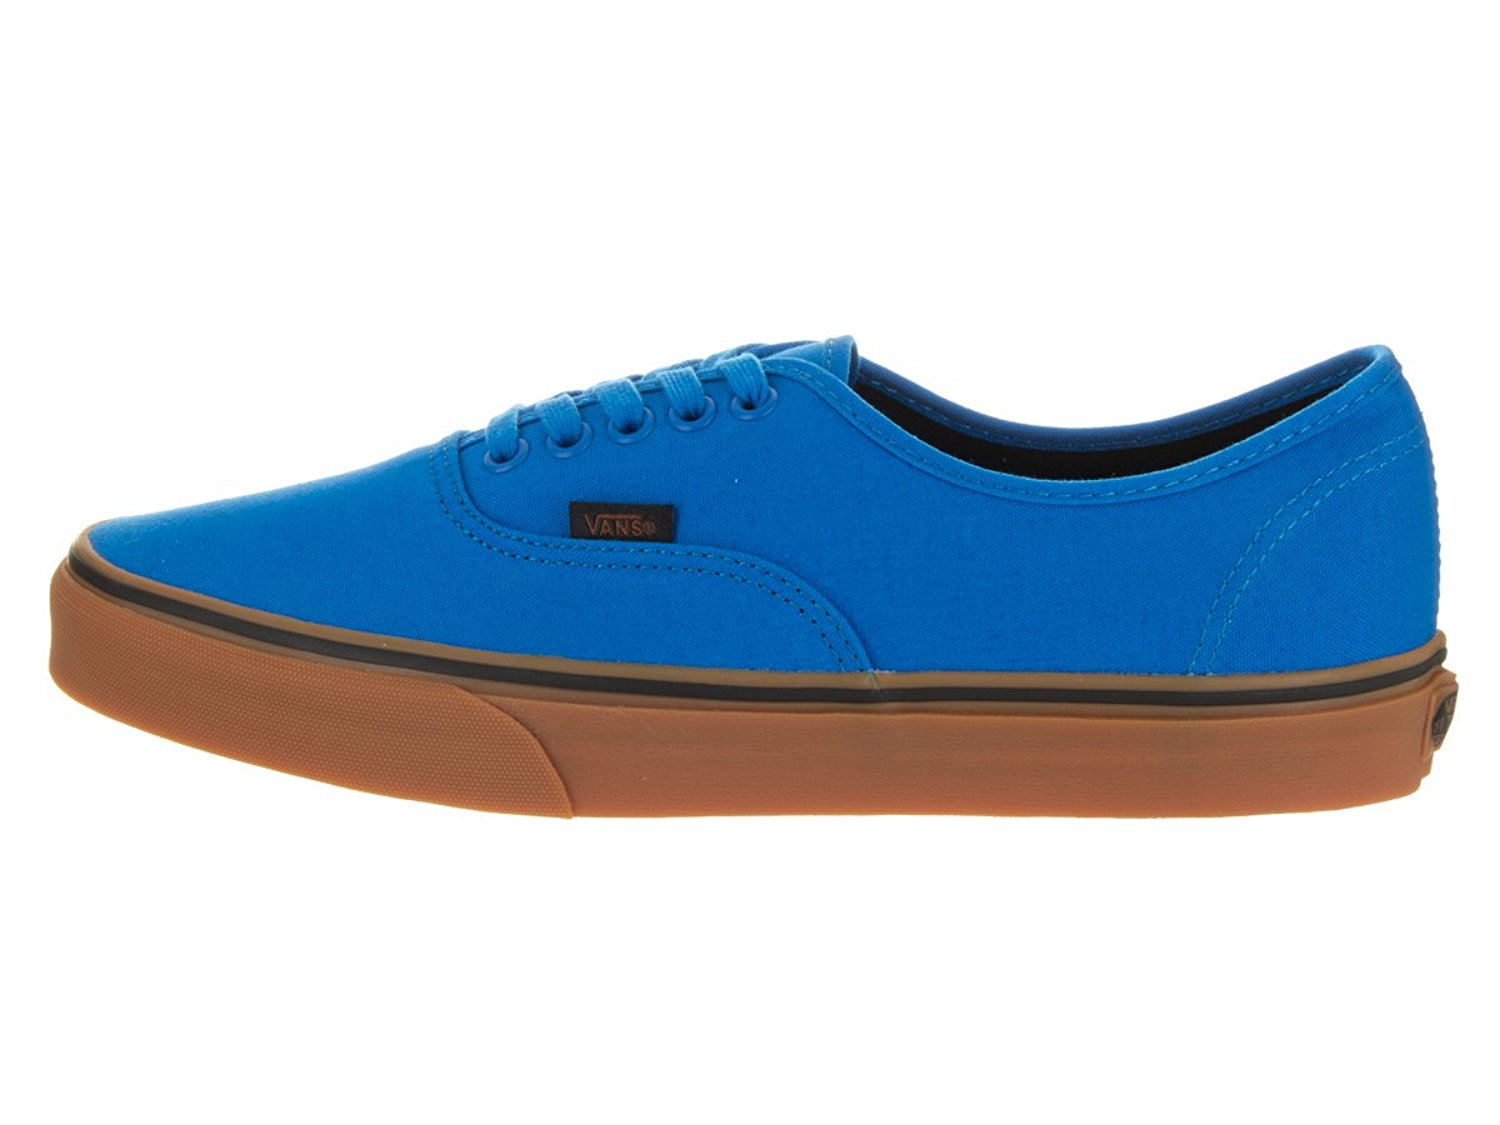 Vans Authentic Gumsole Imperial Blue/Black Men's Skate Shoes Size 10.5